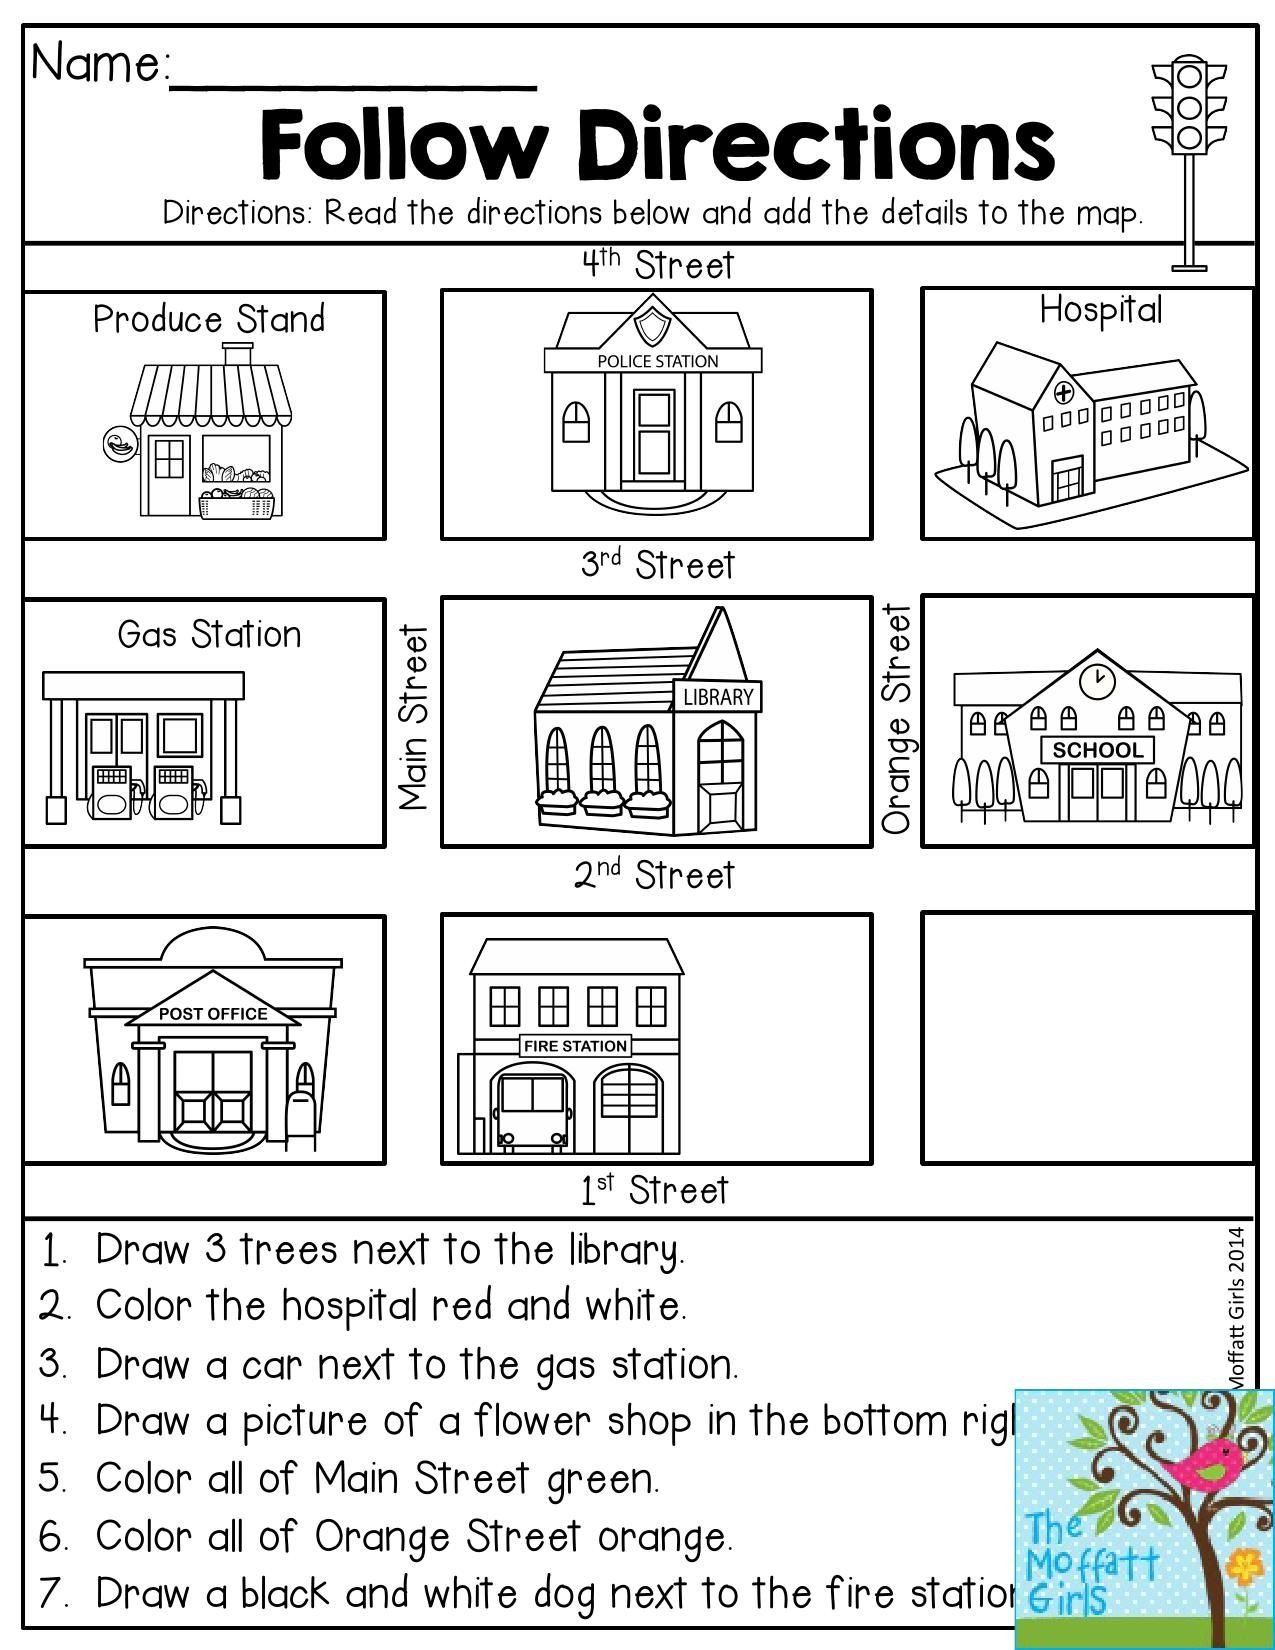 Map Worksheet 2nd Grade Follow Directions Read the Directions and Add the Details